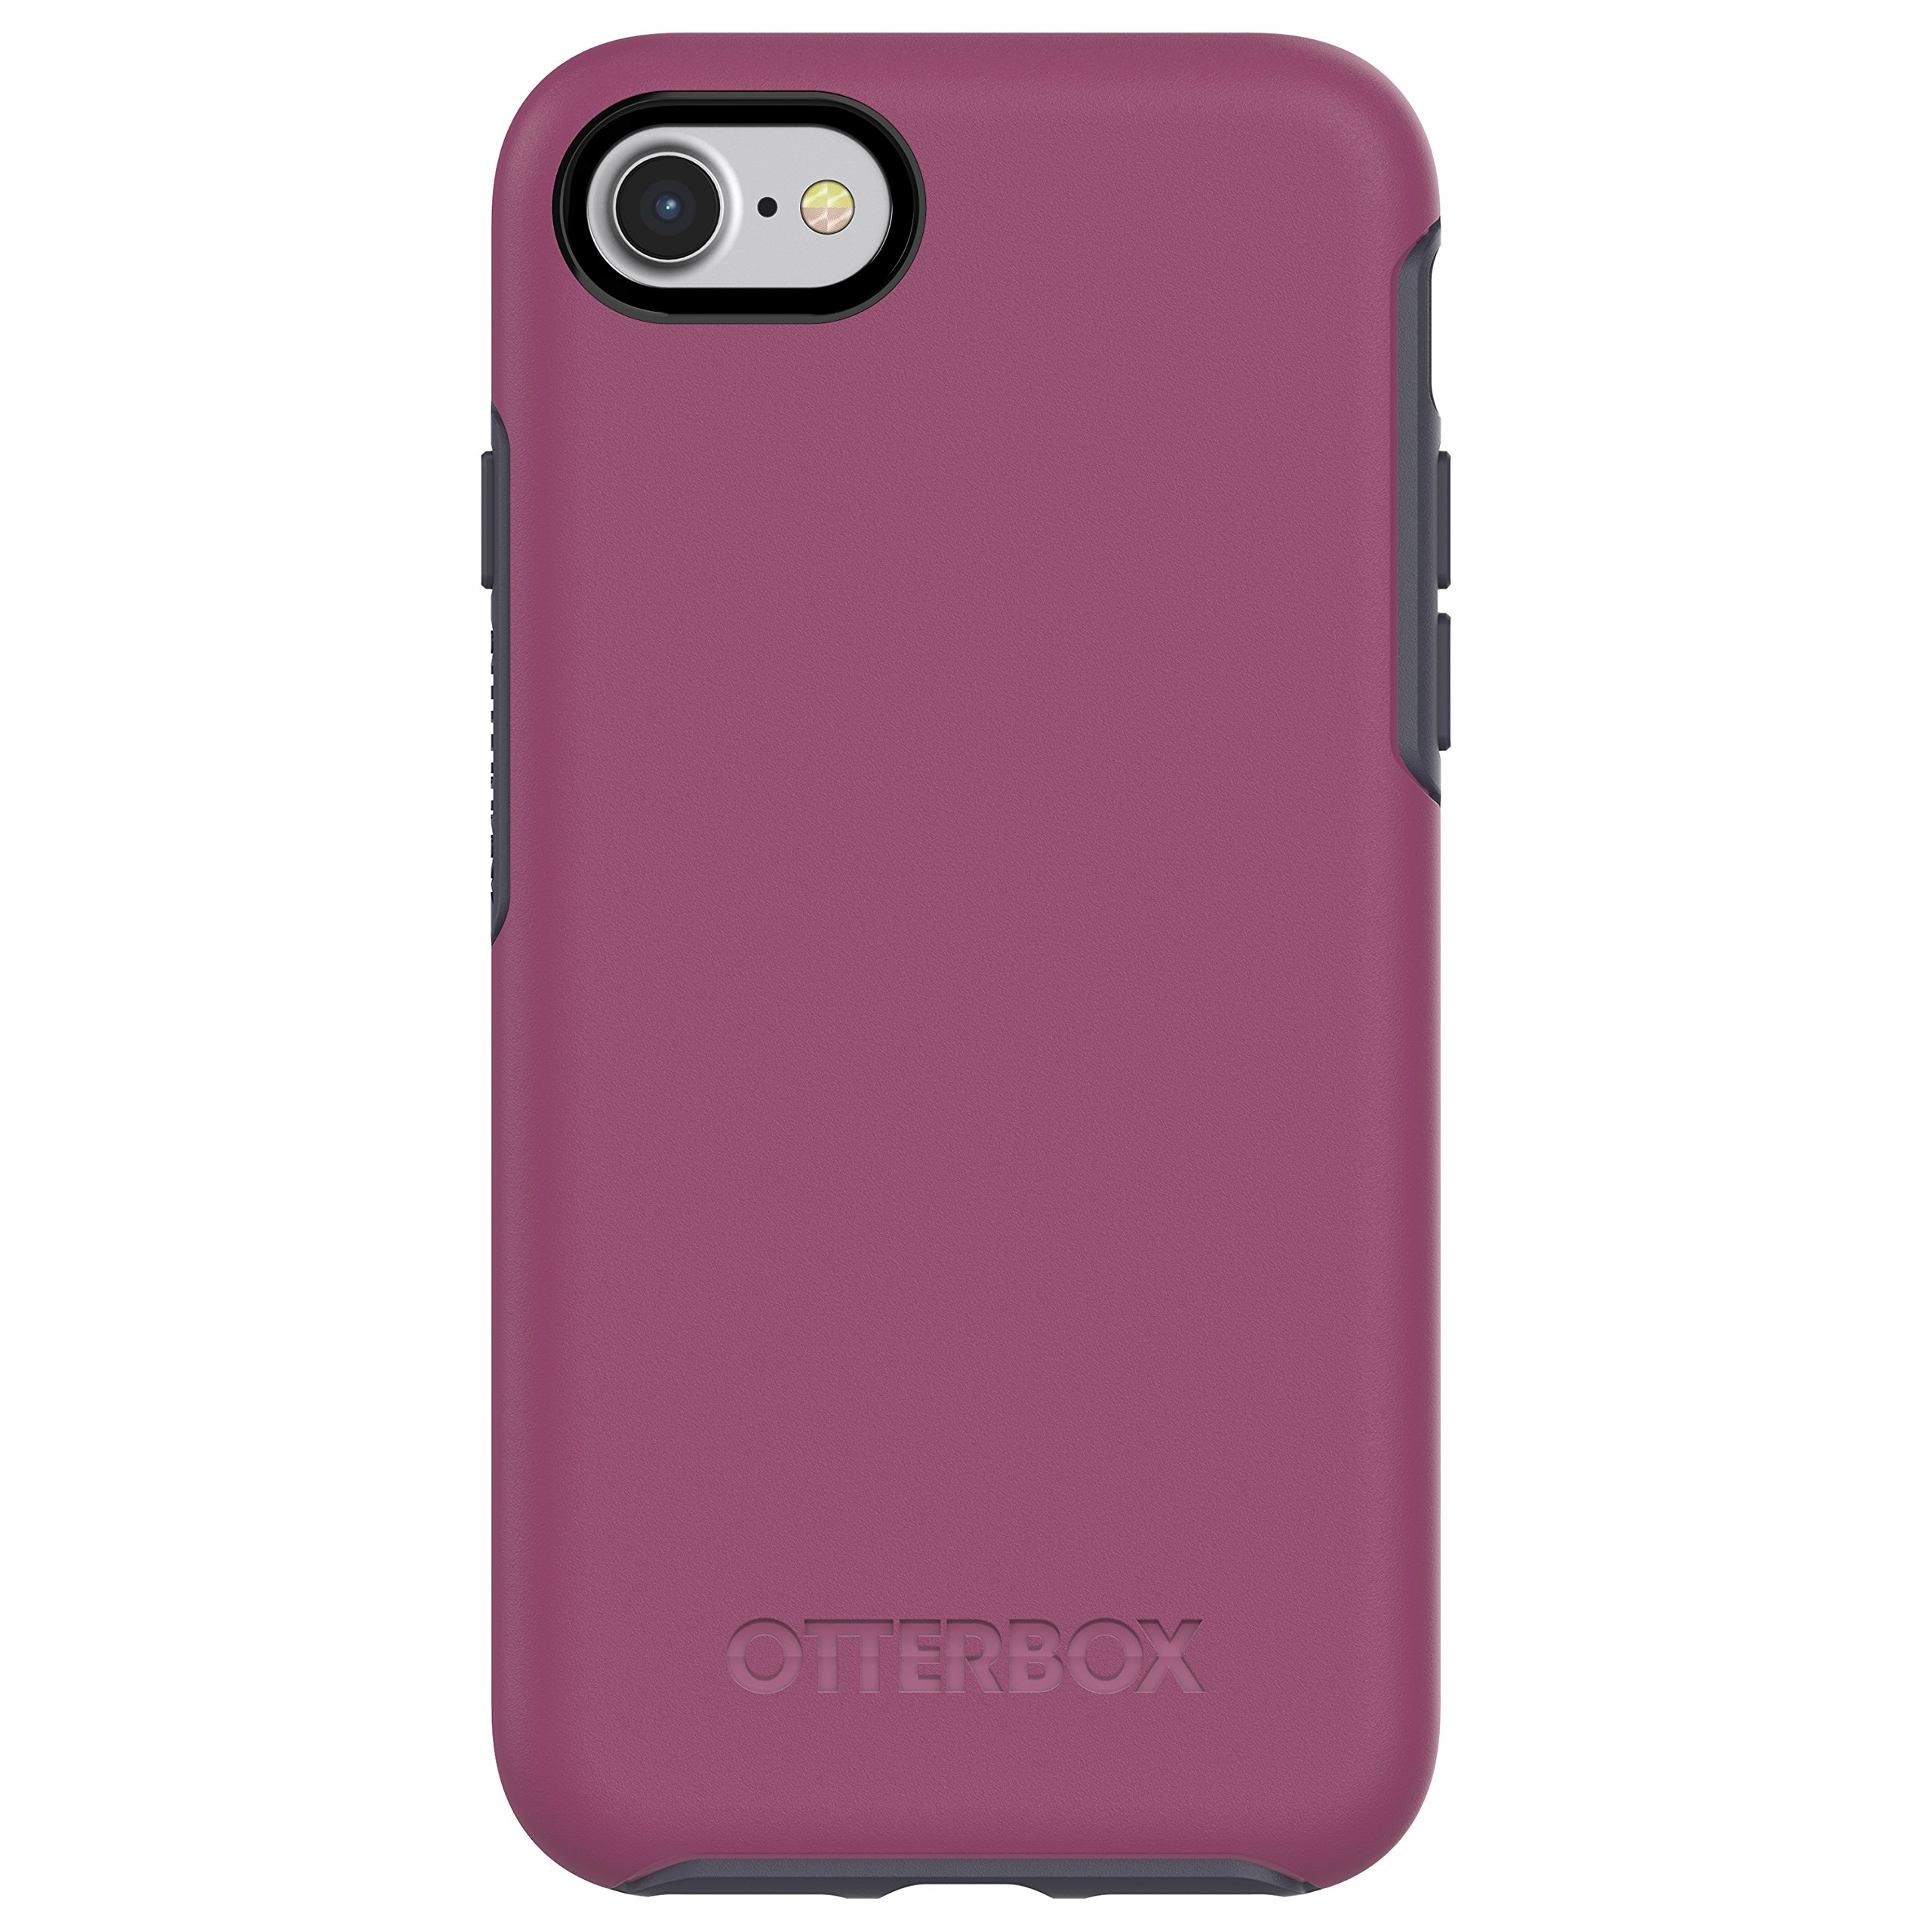 OtterBox SYMMETRY SERIES Case for iPhone SE (2nd gen - 2020) and iPhone 8/7 (NOT PLUS) - Retail Packaging - MIX BERRY JAM (BATON ROUGE/MARITIME BLUE)